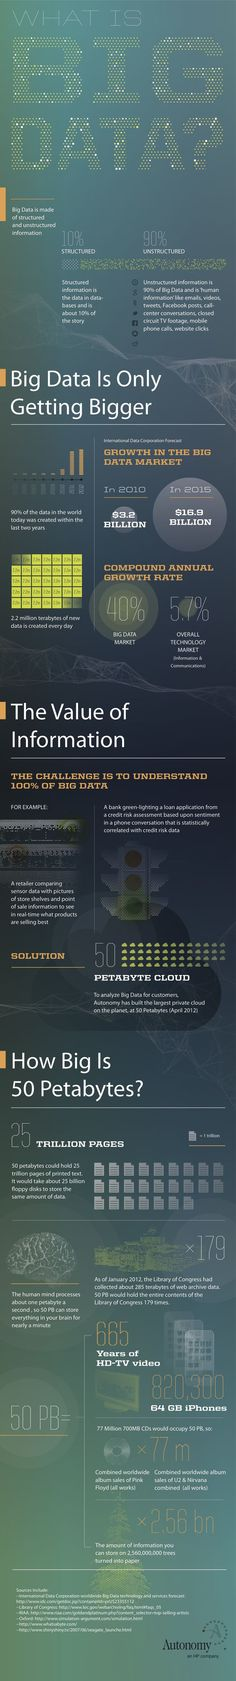 What is Big Data? An interesting #Infographic from @AutonomyCorp, via @VentureBeat (with a h/t to @mat_says)